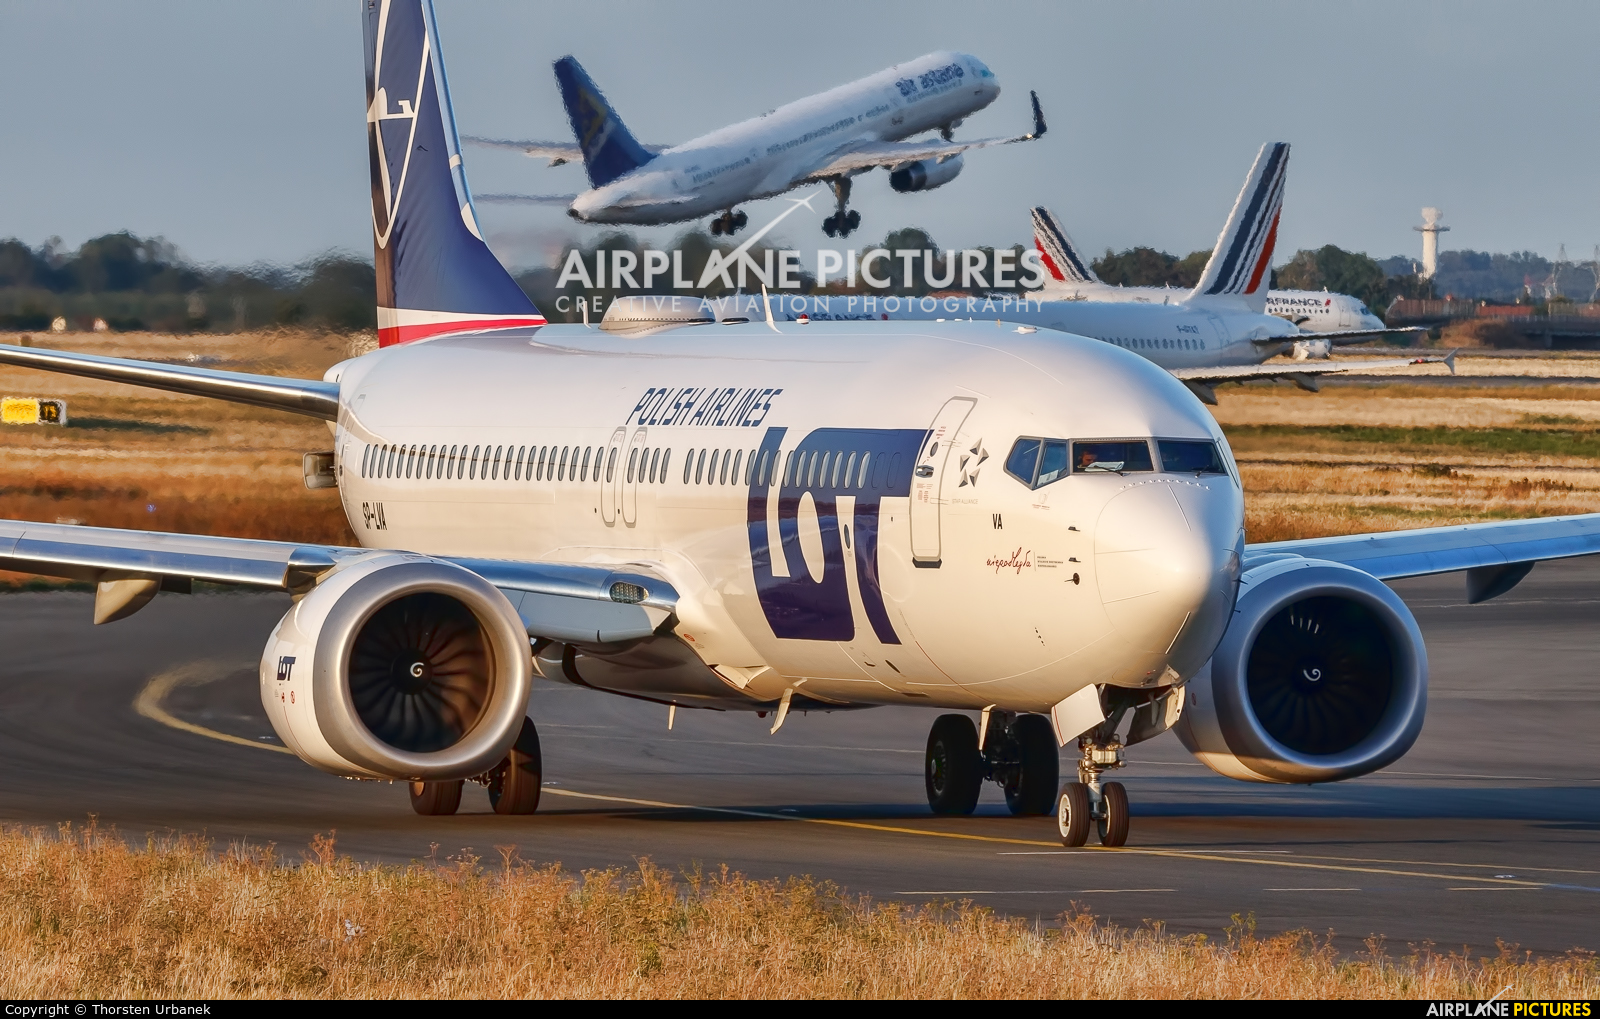 LOT - Polish Airlines SP-LVA aircraft at Paris - Charles de Gaulle